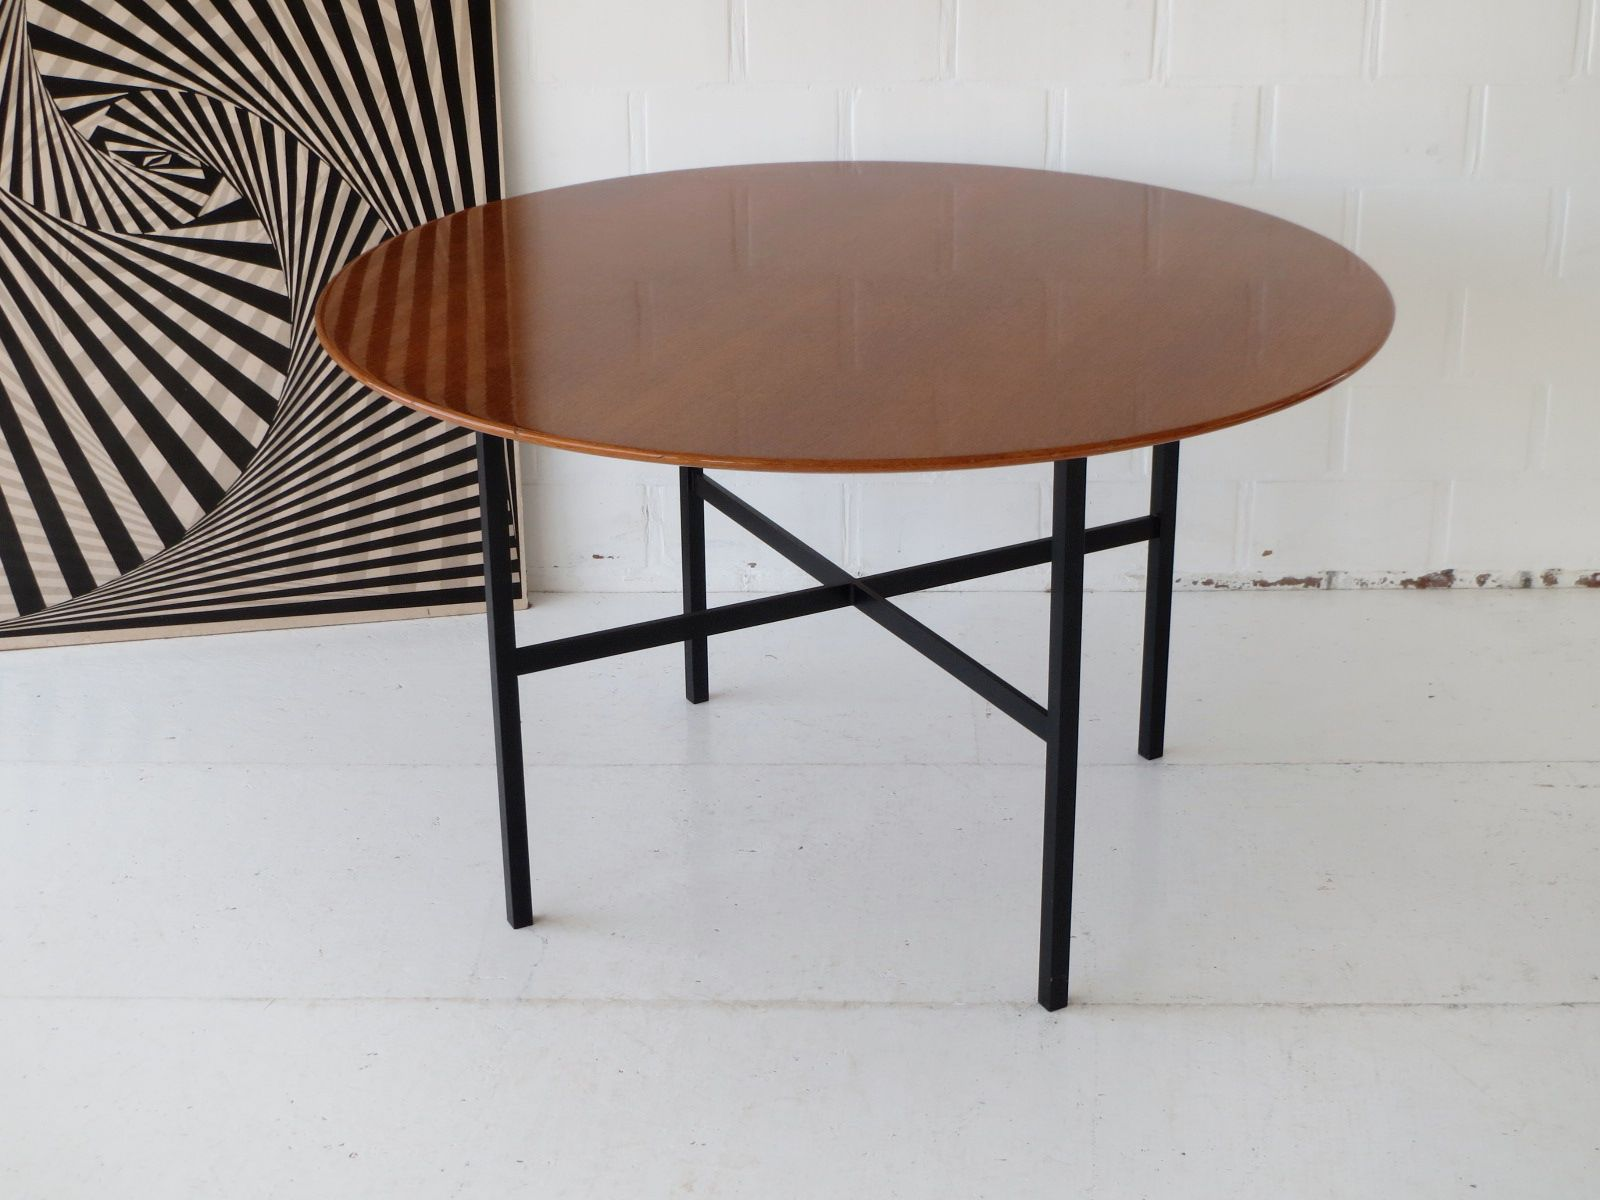 Vintage Belgian Teak Dining Table By Florence Knoll For